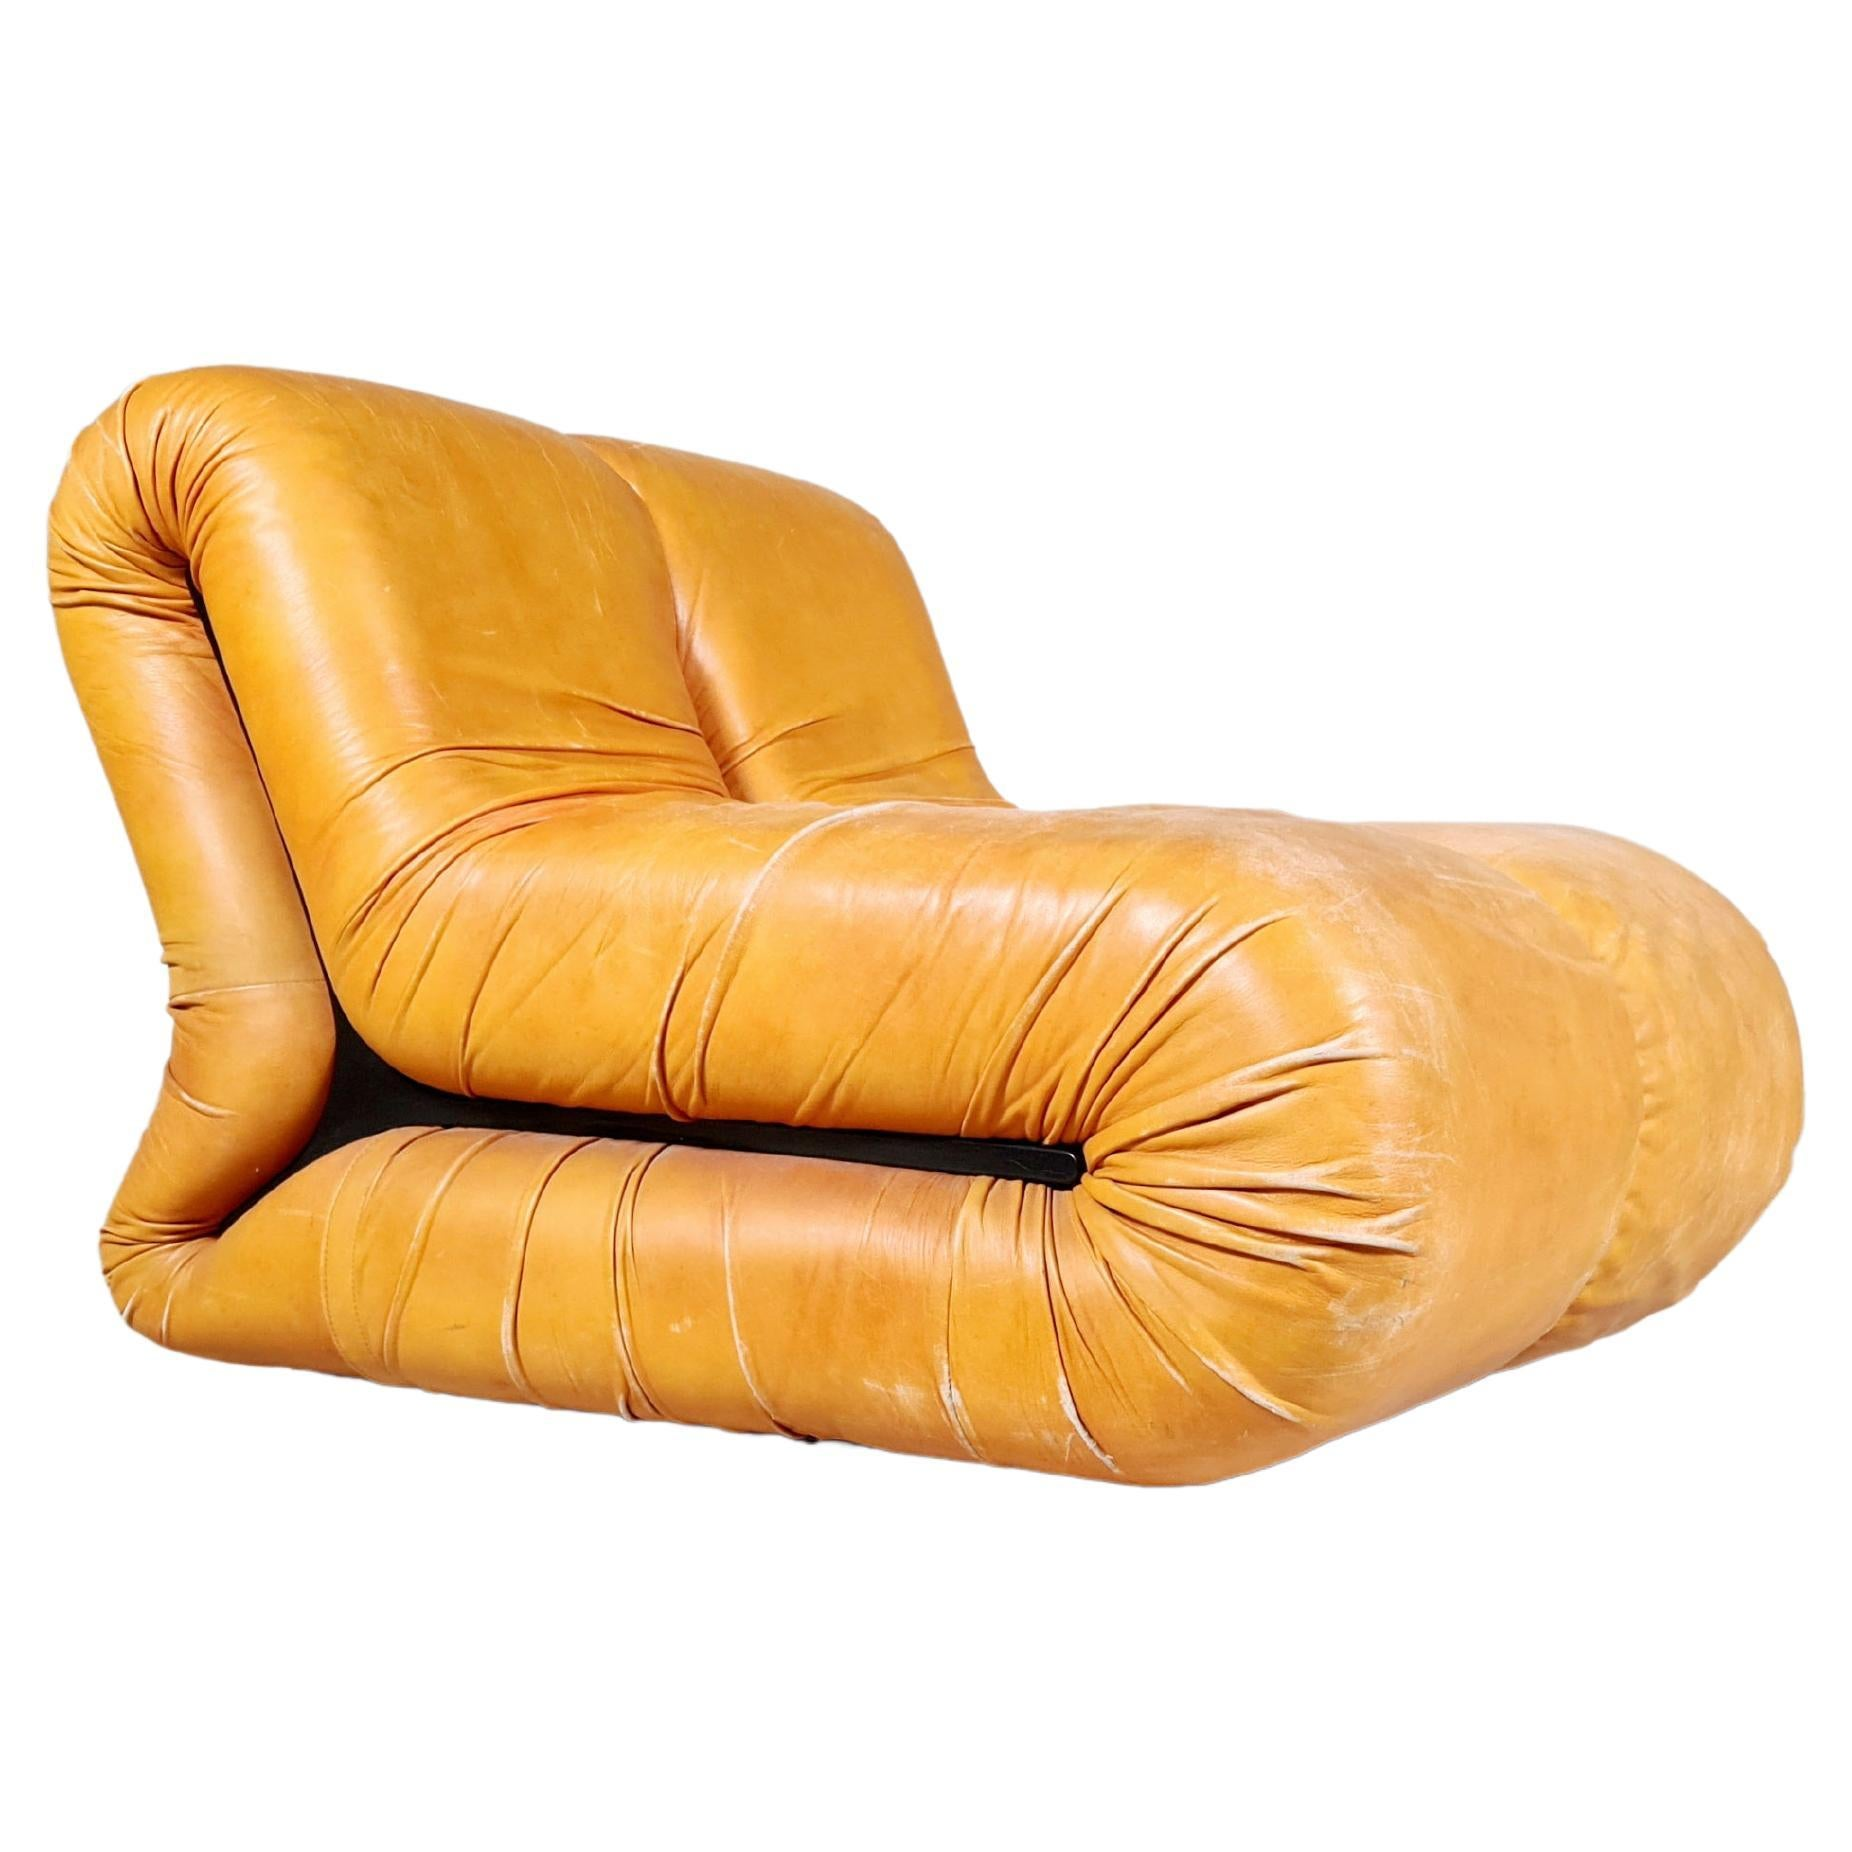 Claudio Vagnoni for 1P, 'Pagru' Lounge Chair in Original Leather, 1960s